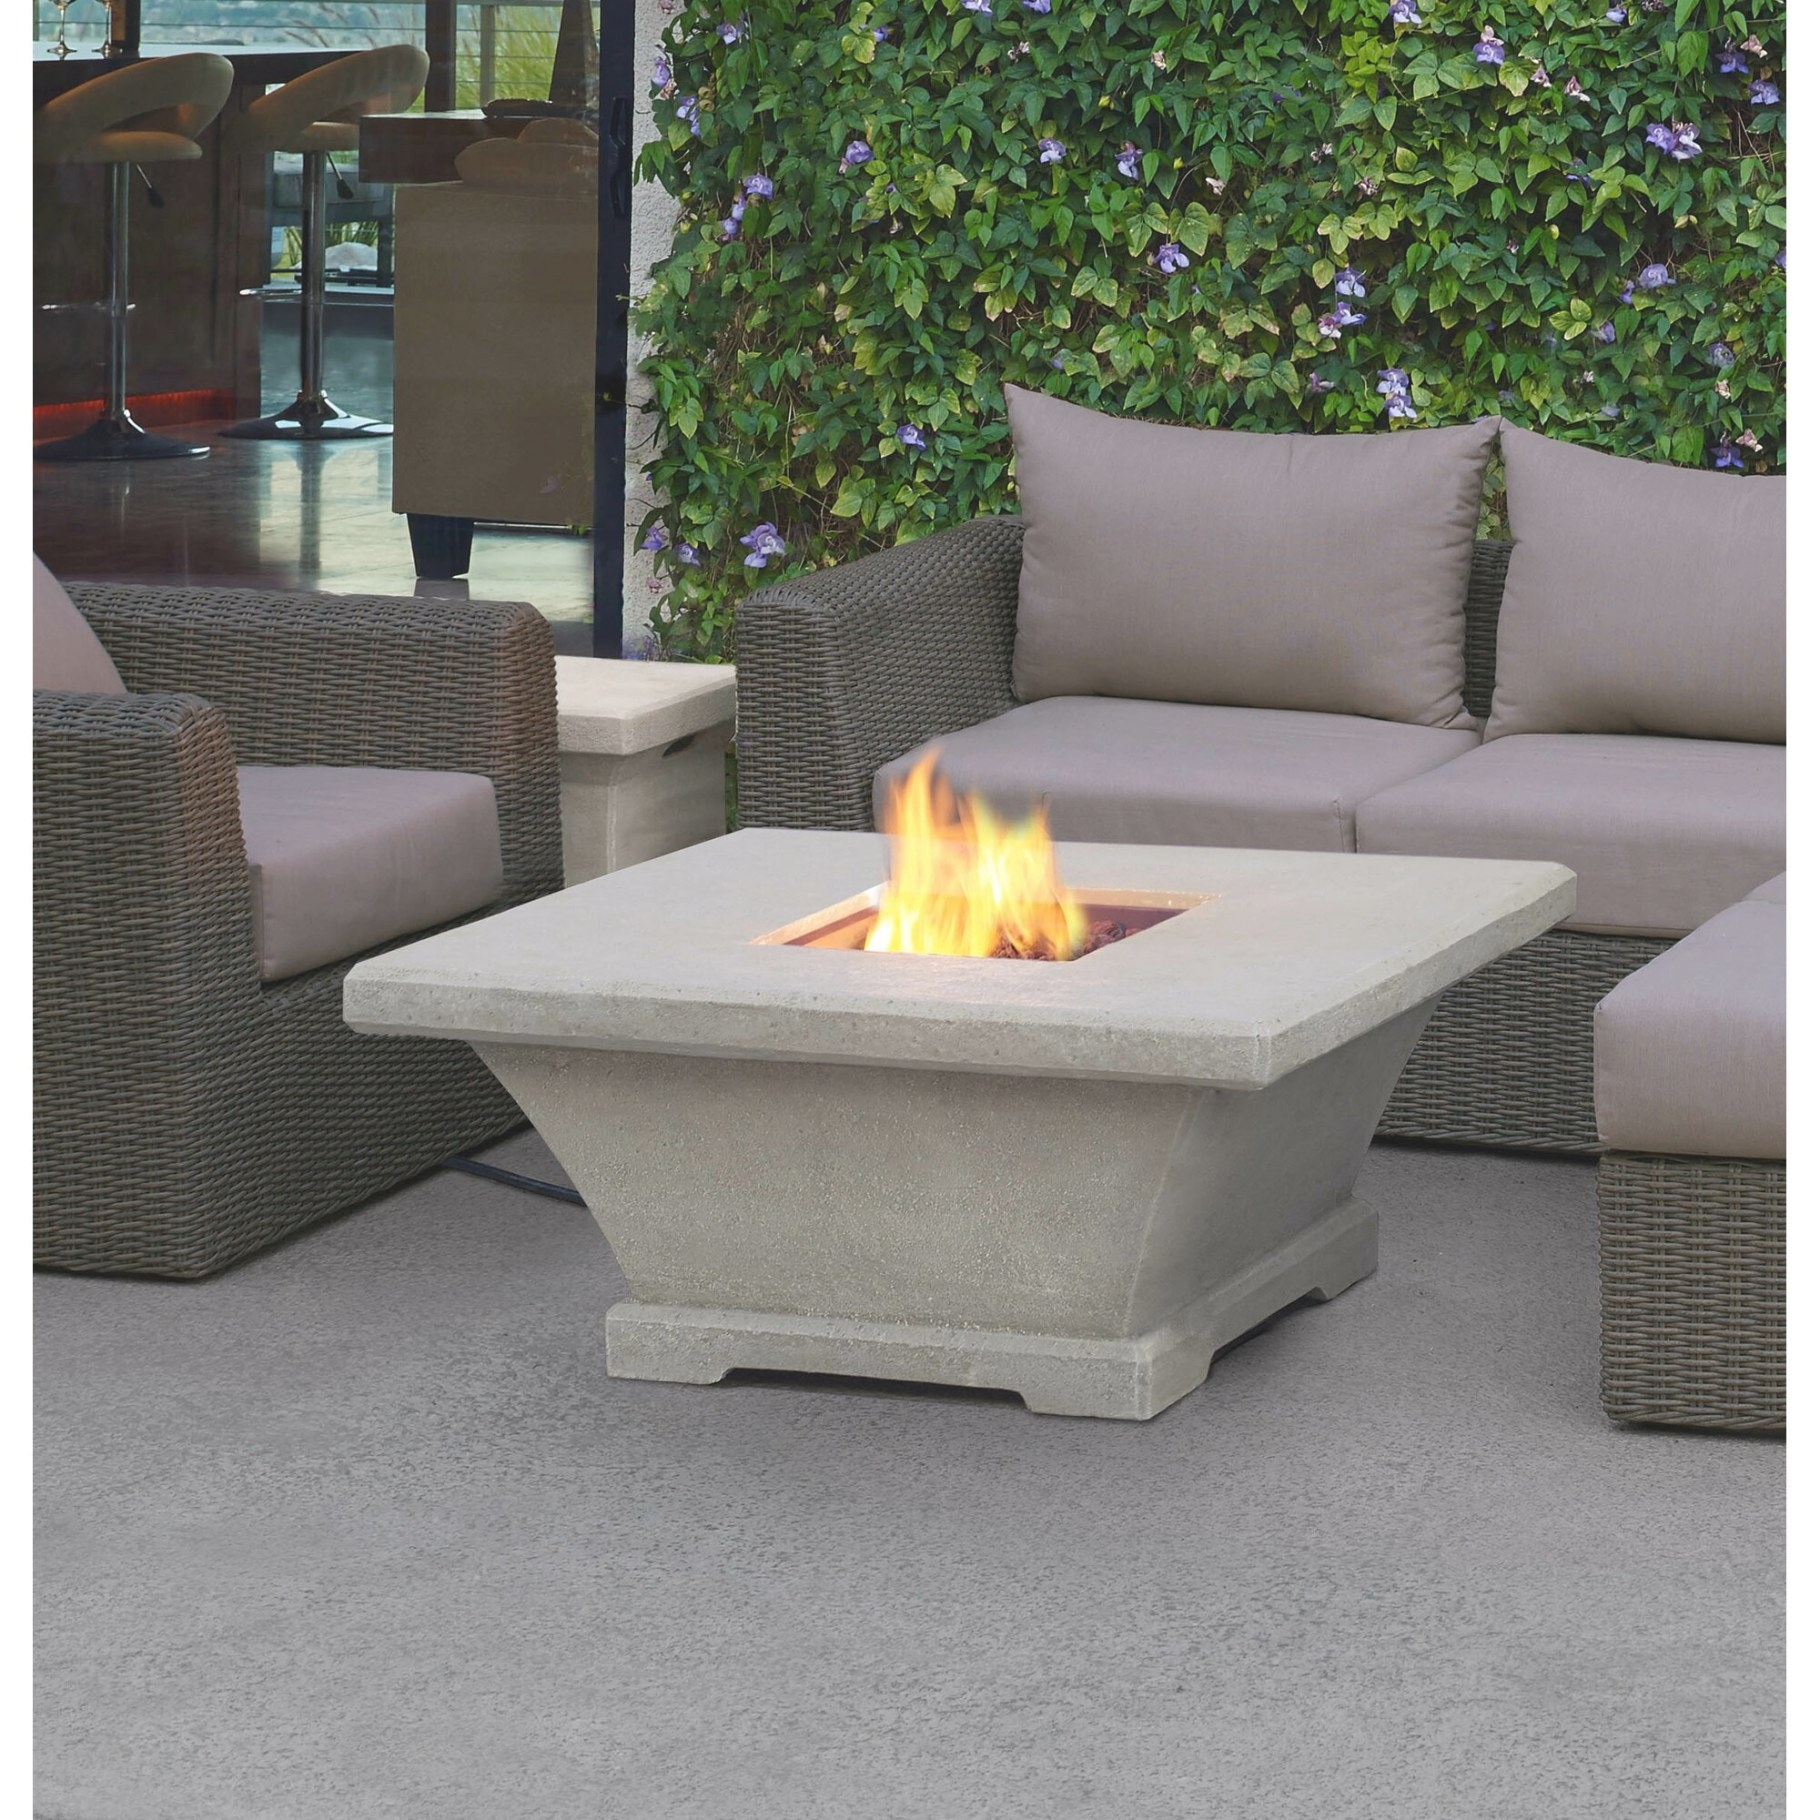 Real Flame Monaco Square Low Profile Propane Fire Pit pertaining to Propane Fire Pit Table